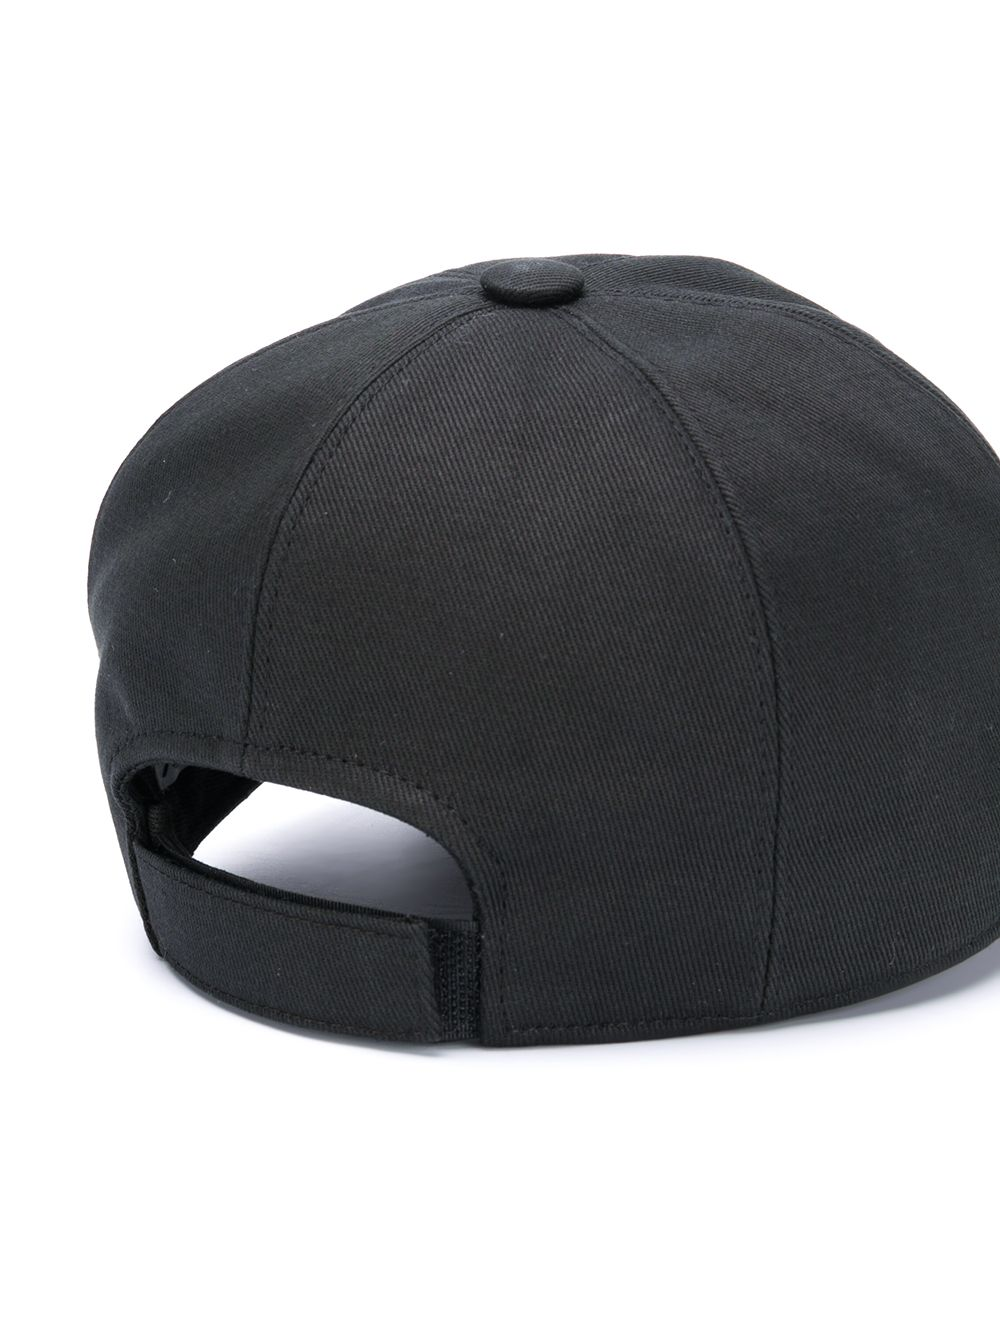 GIVENCHY KIDS Paris Logo Cap Black - Maison De Fashion